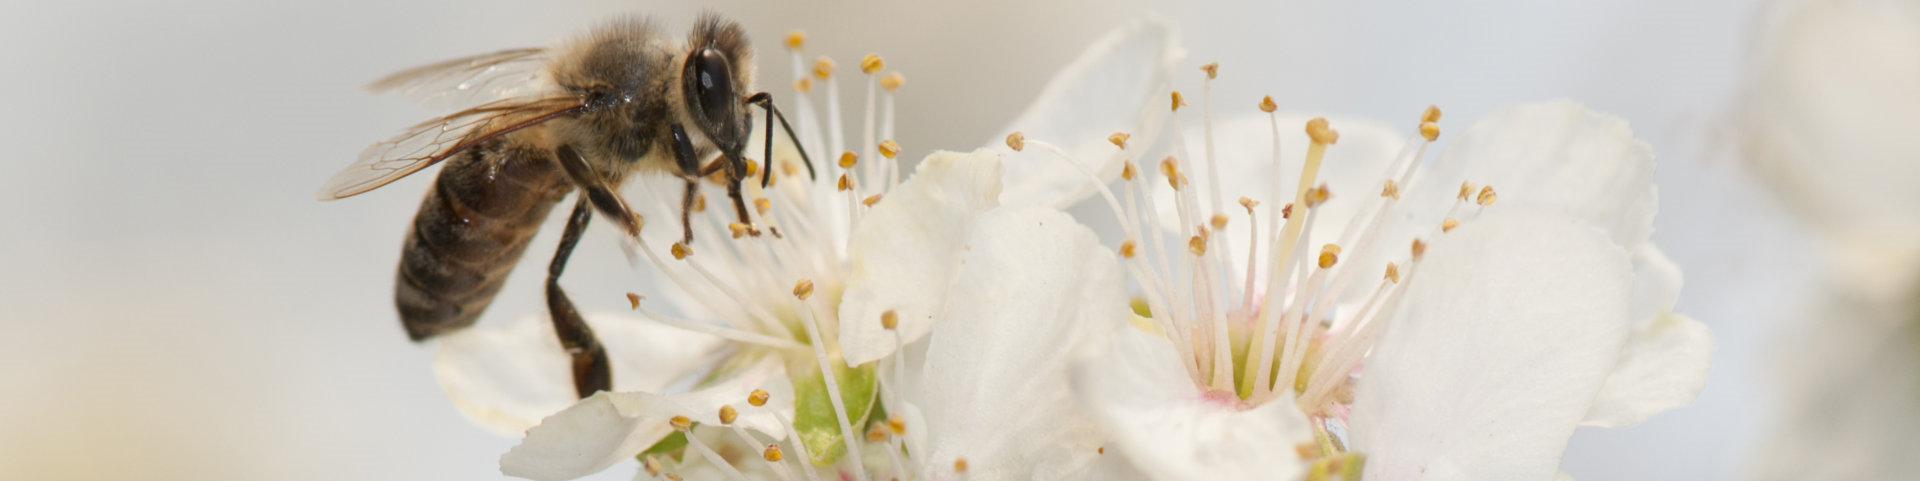 bee feasting with pollen from an apple flower